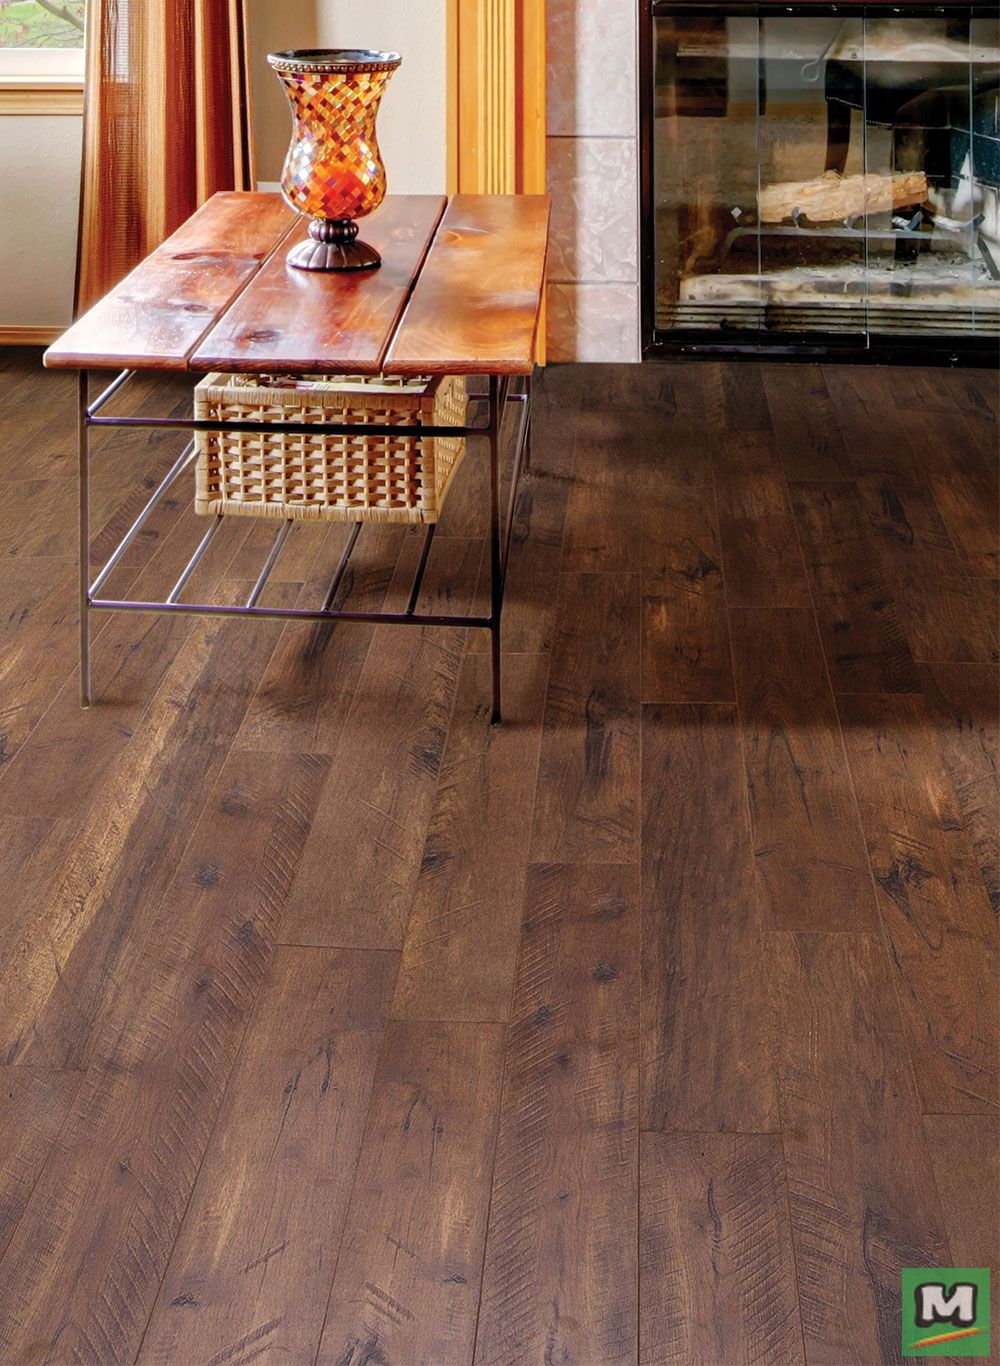 Get The Look Of Real Hardwood Flooring With No Glue And Mess Superfast